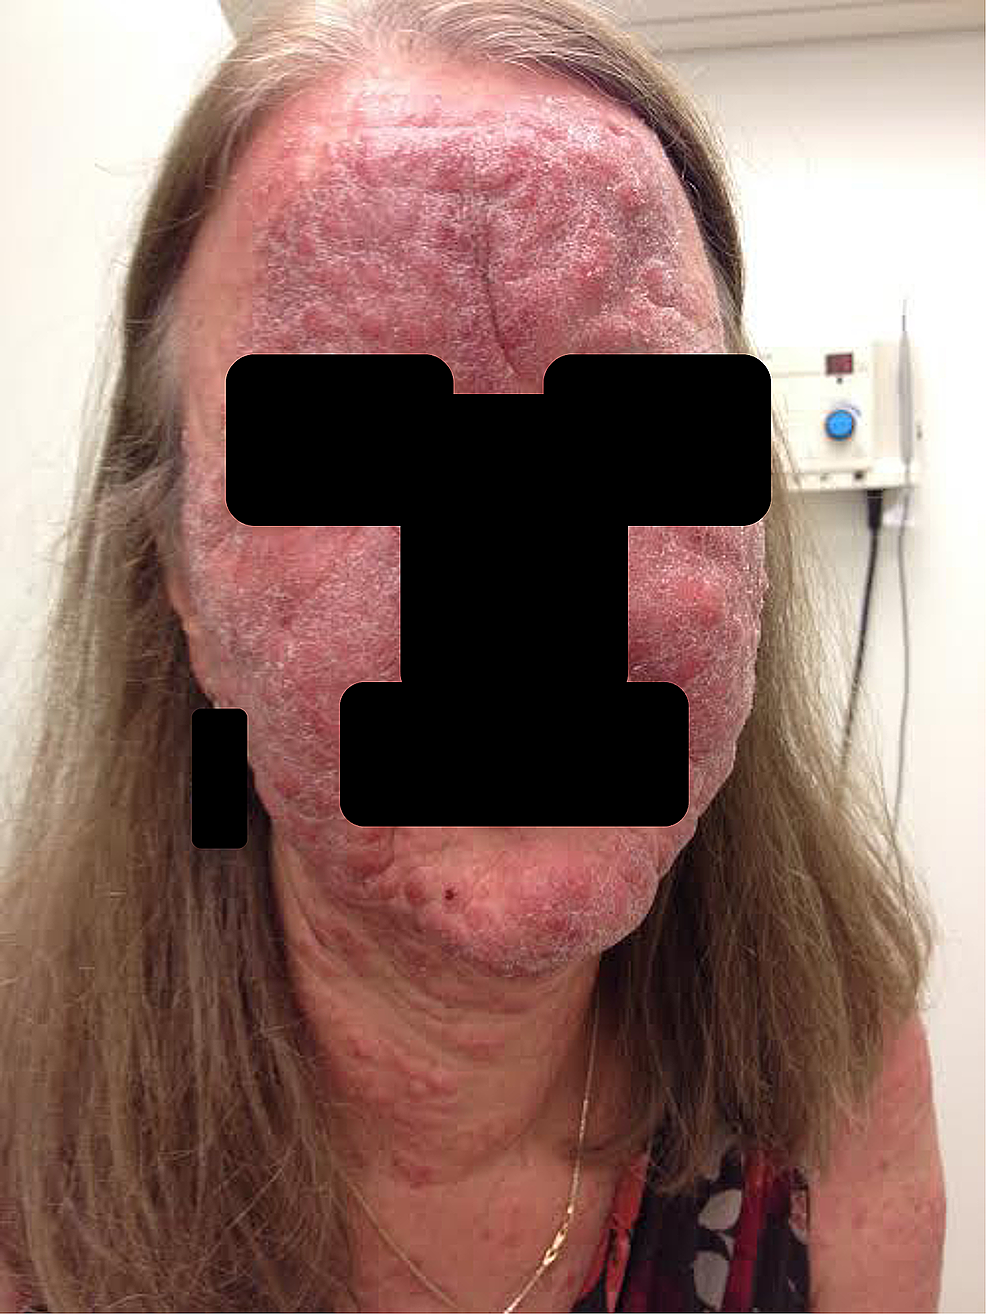 Clinical-photograph-of-the-face-at-six-month-follow-up,-showing-progression-to-thickened-plaques.